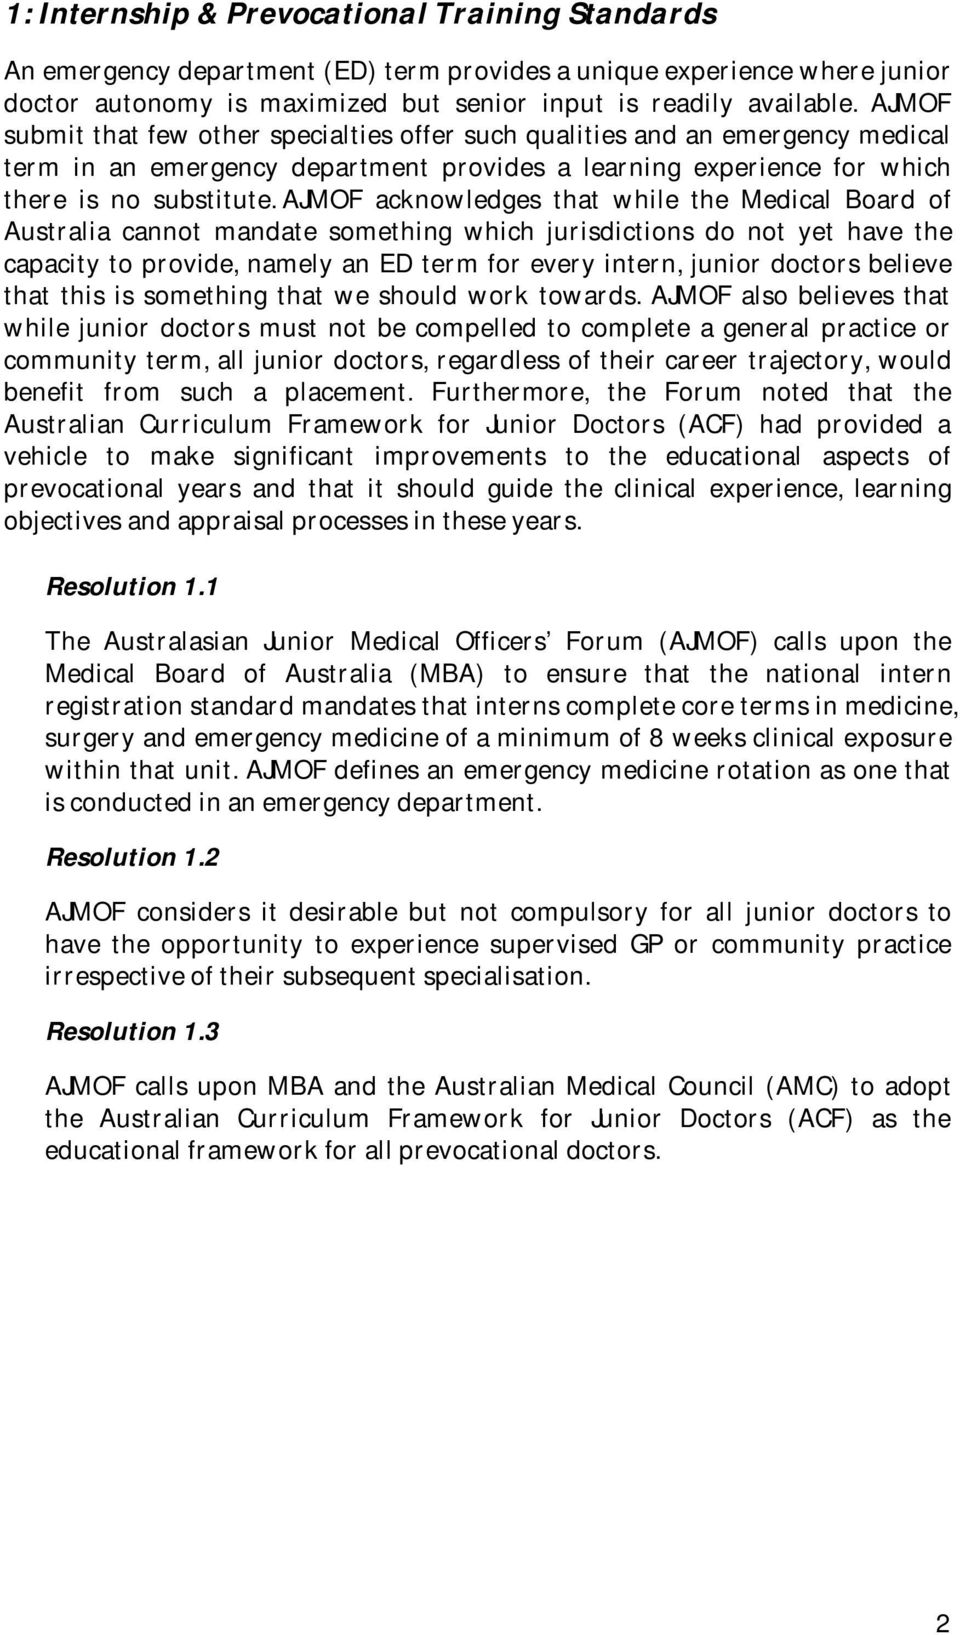 AJMOF acknowledges that while the Medical Board of Australia cannot mandate something which jurisdictions do not yet have the capacity to provide, namely an ED term for every intern, junior doctors